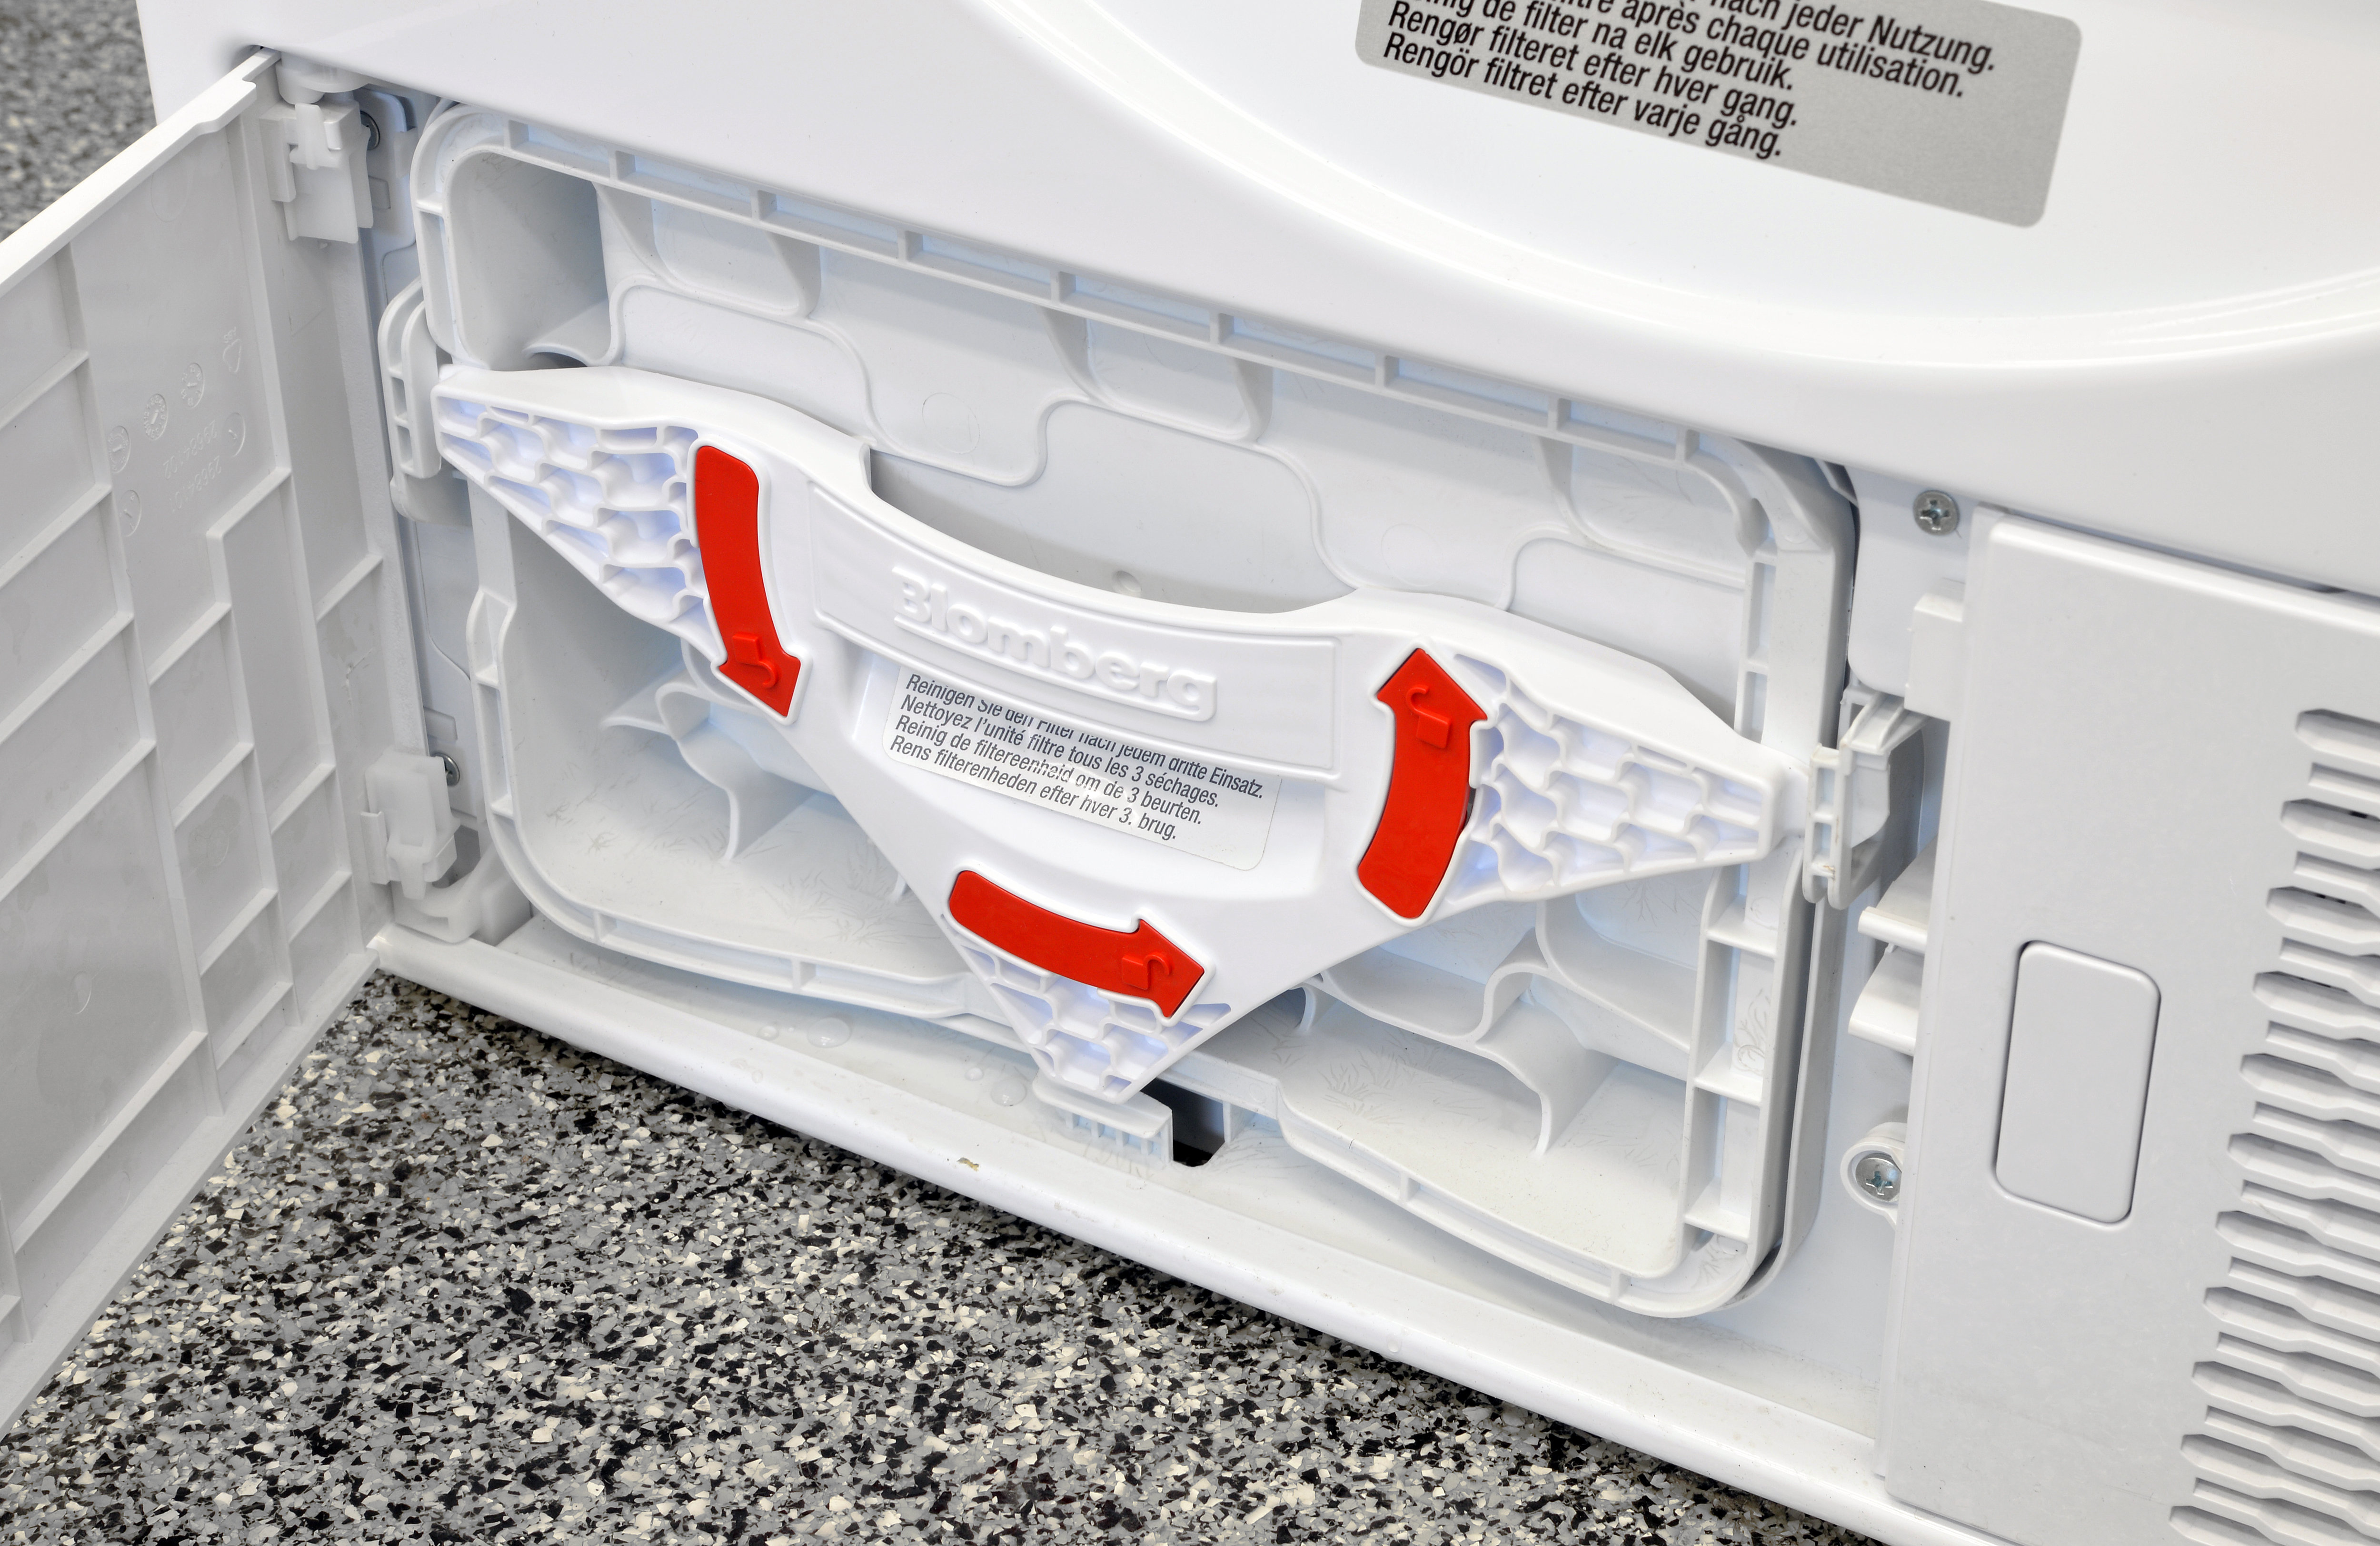 Bright red arrows remind users how to release the Blomberg DHP24412W's secondary lint trap.